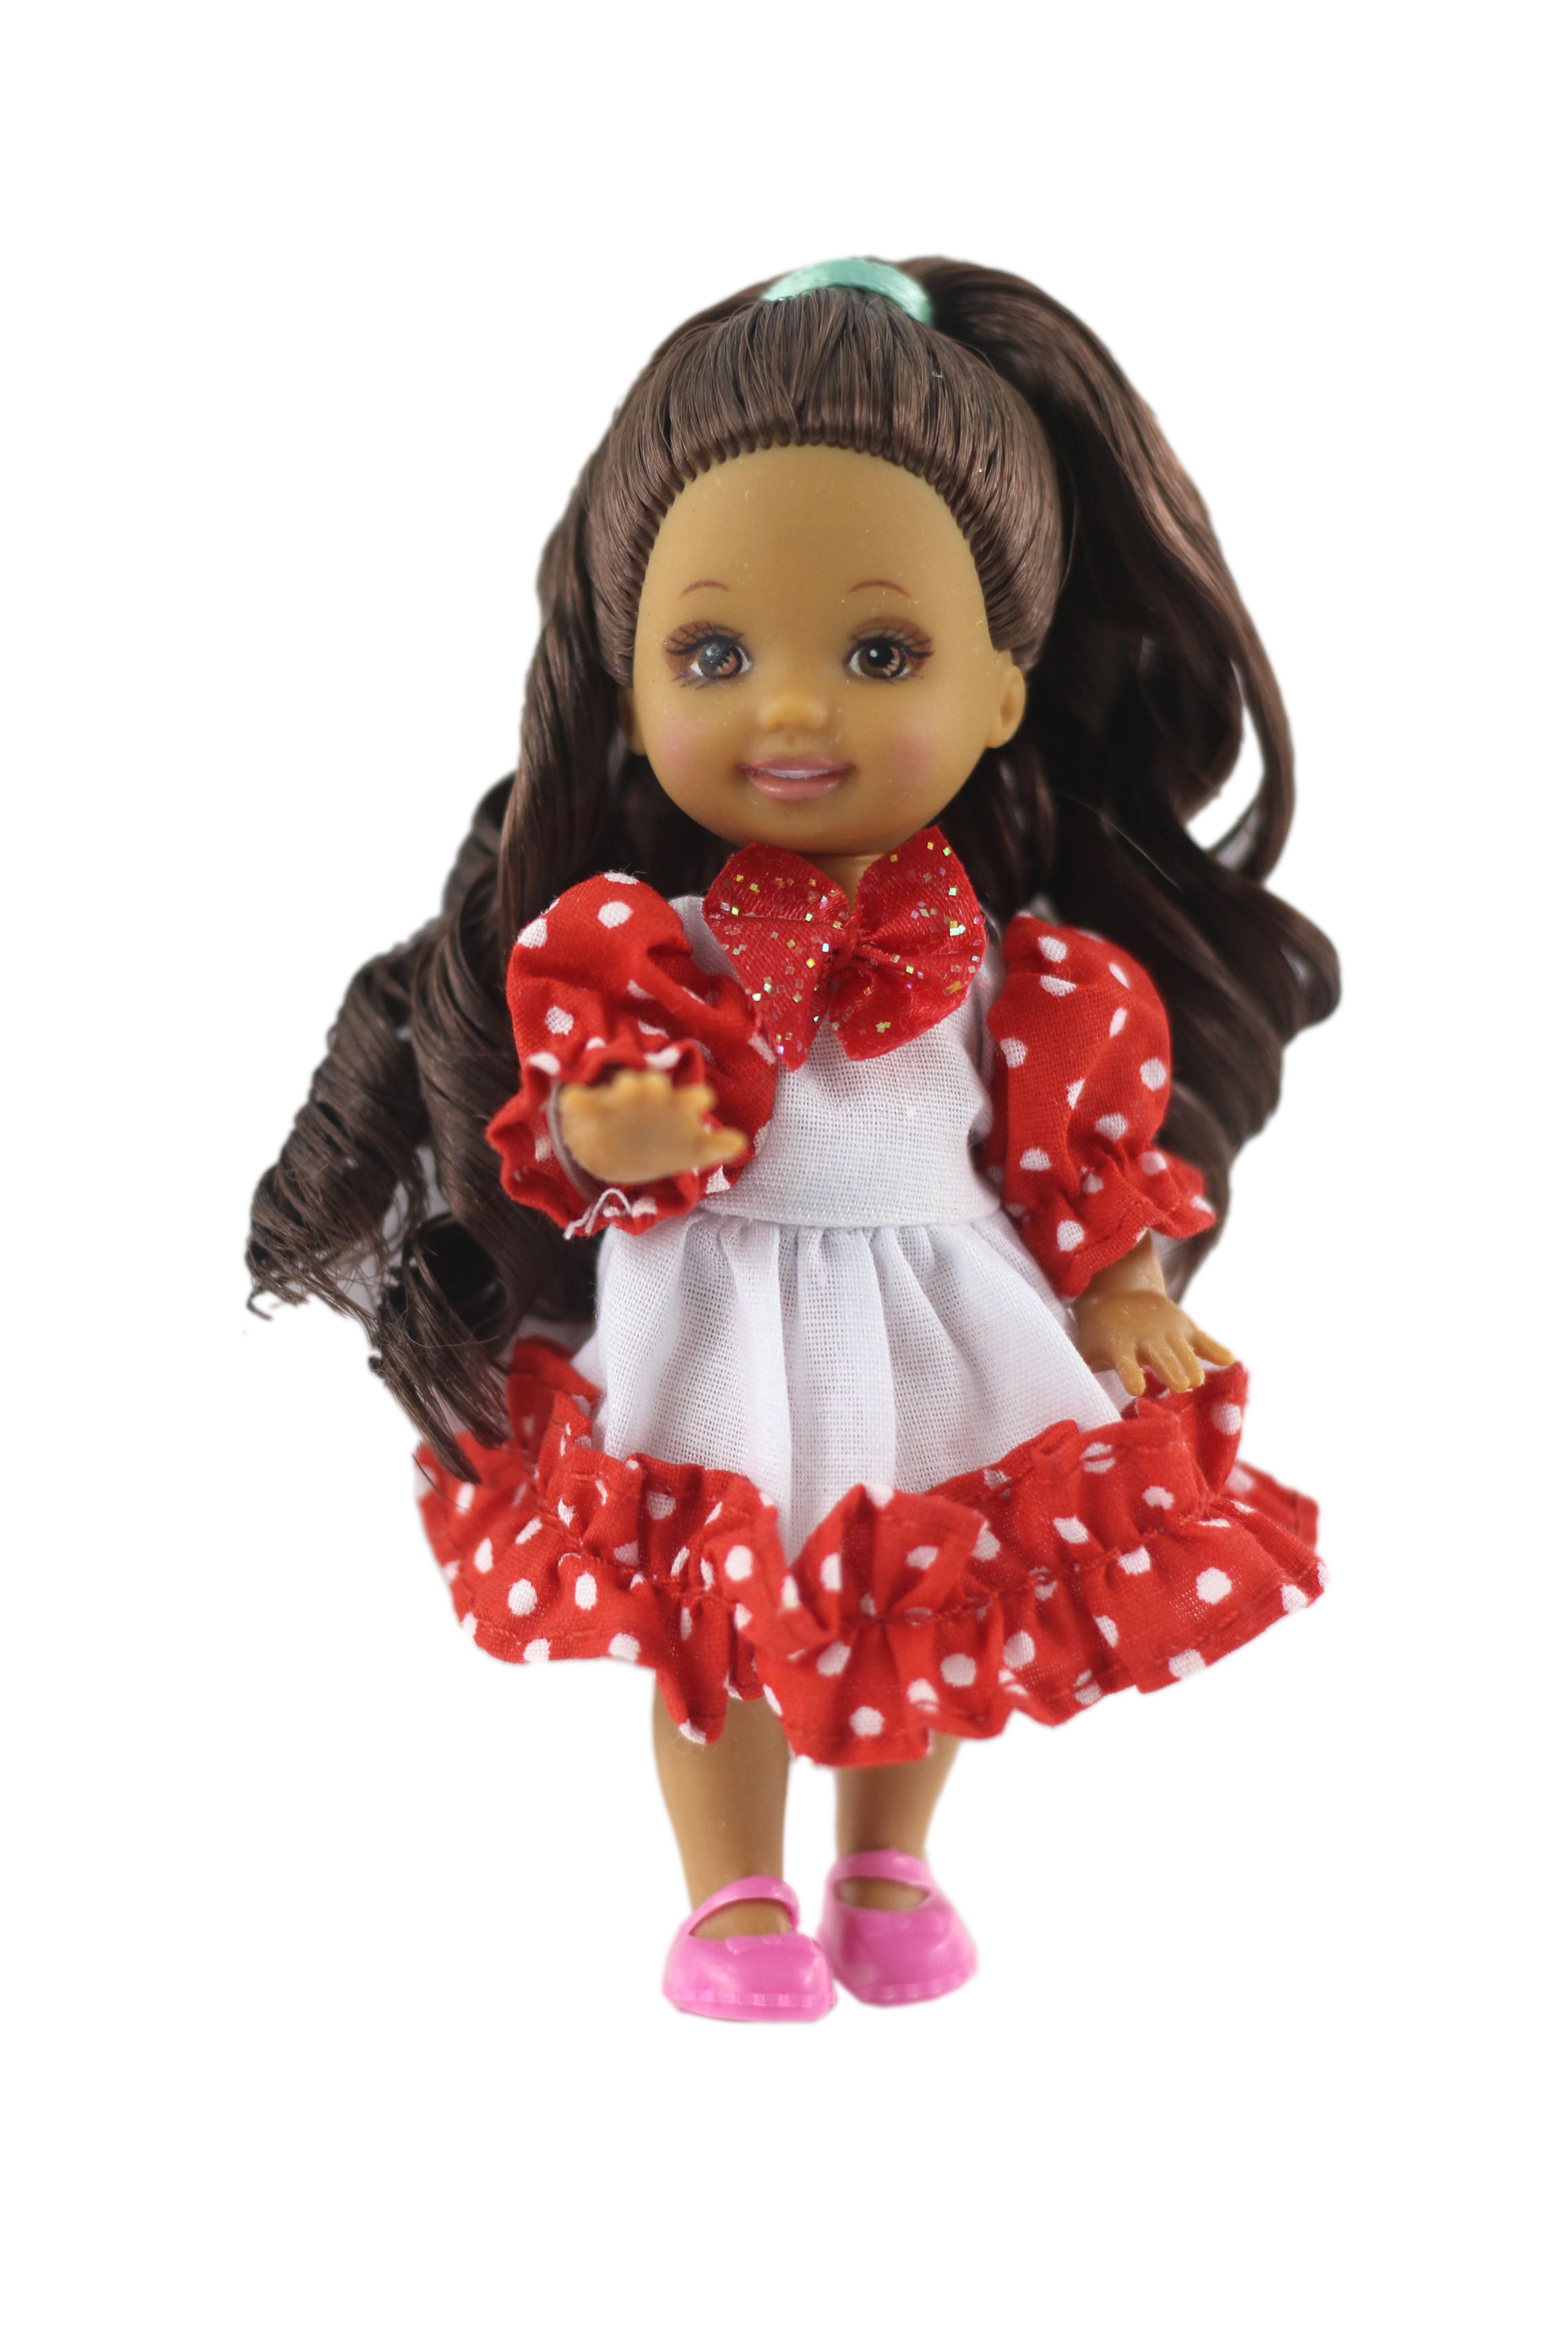 NK One Pcs Cute Mini Doll Dress Daily Wear Gown Clothes For Barbie Sister Kelly Doll Accessories Dollhouse Toys 04A 10X